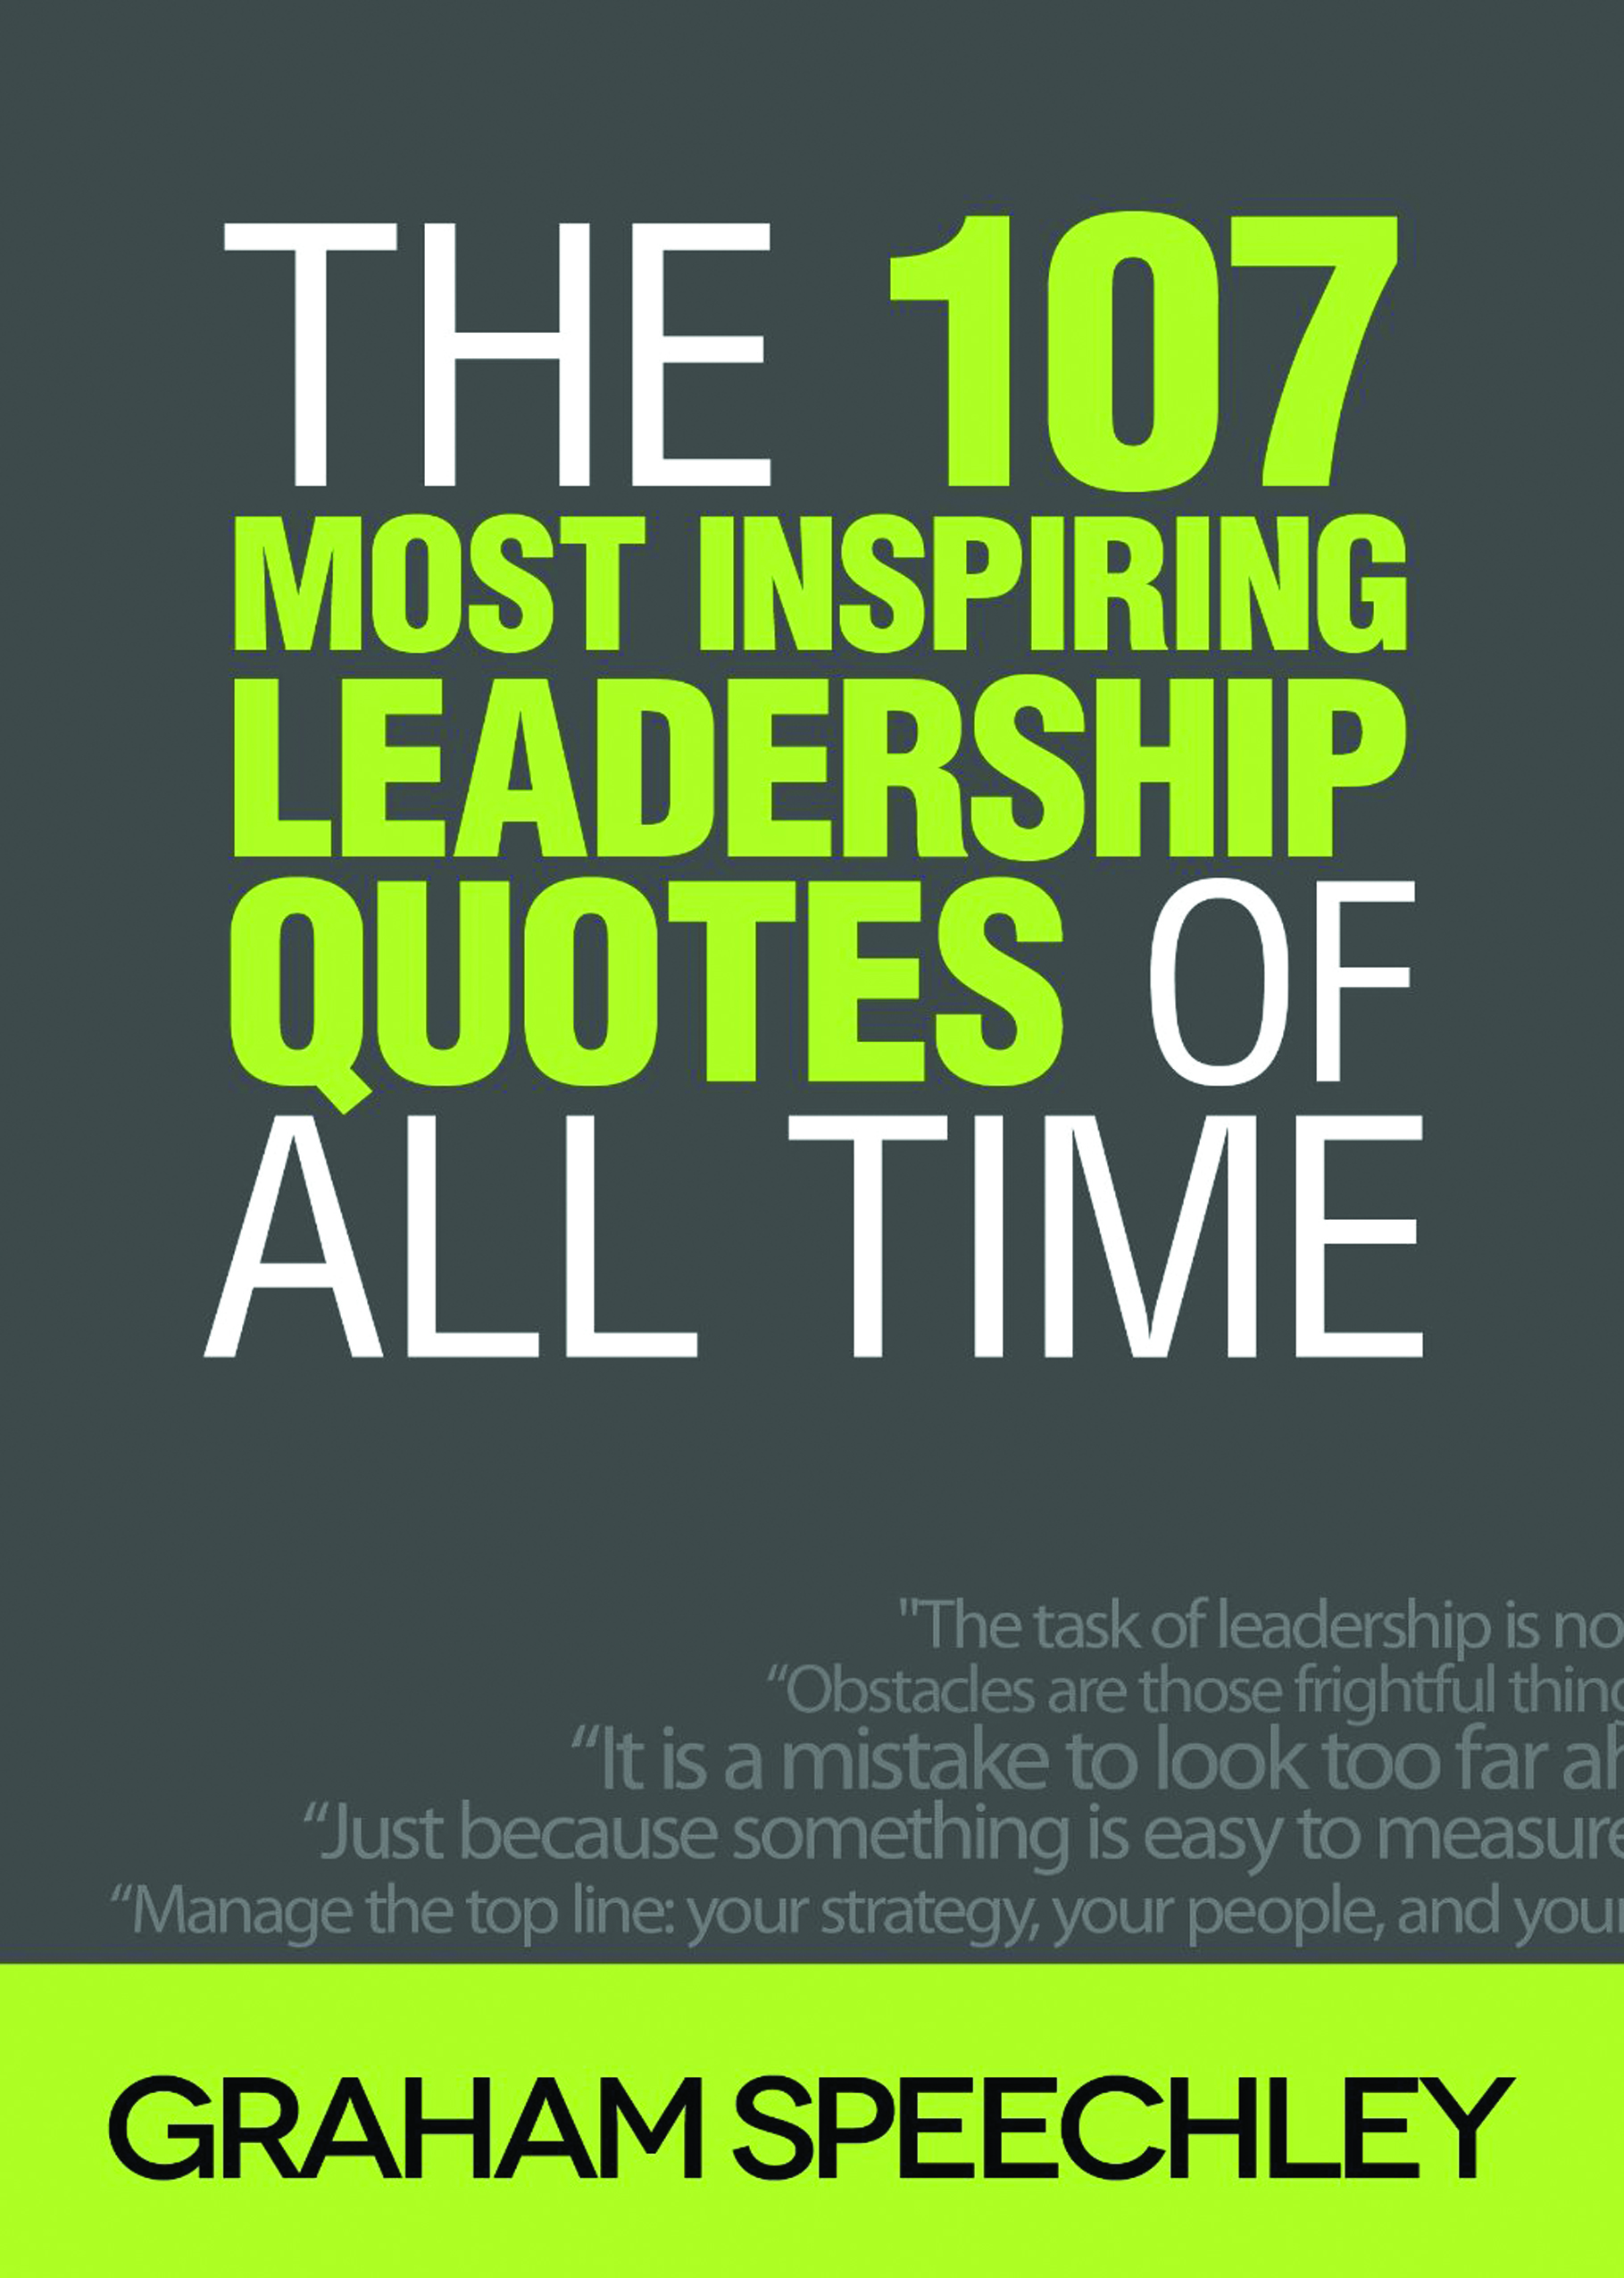 Inspiring Leadership Quotes The 107 Most Inspiring Leadership Quotes Of All Time